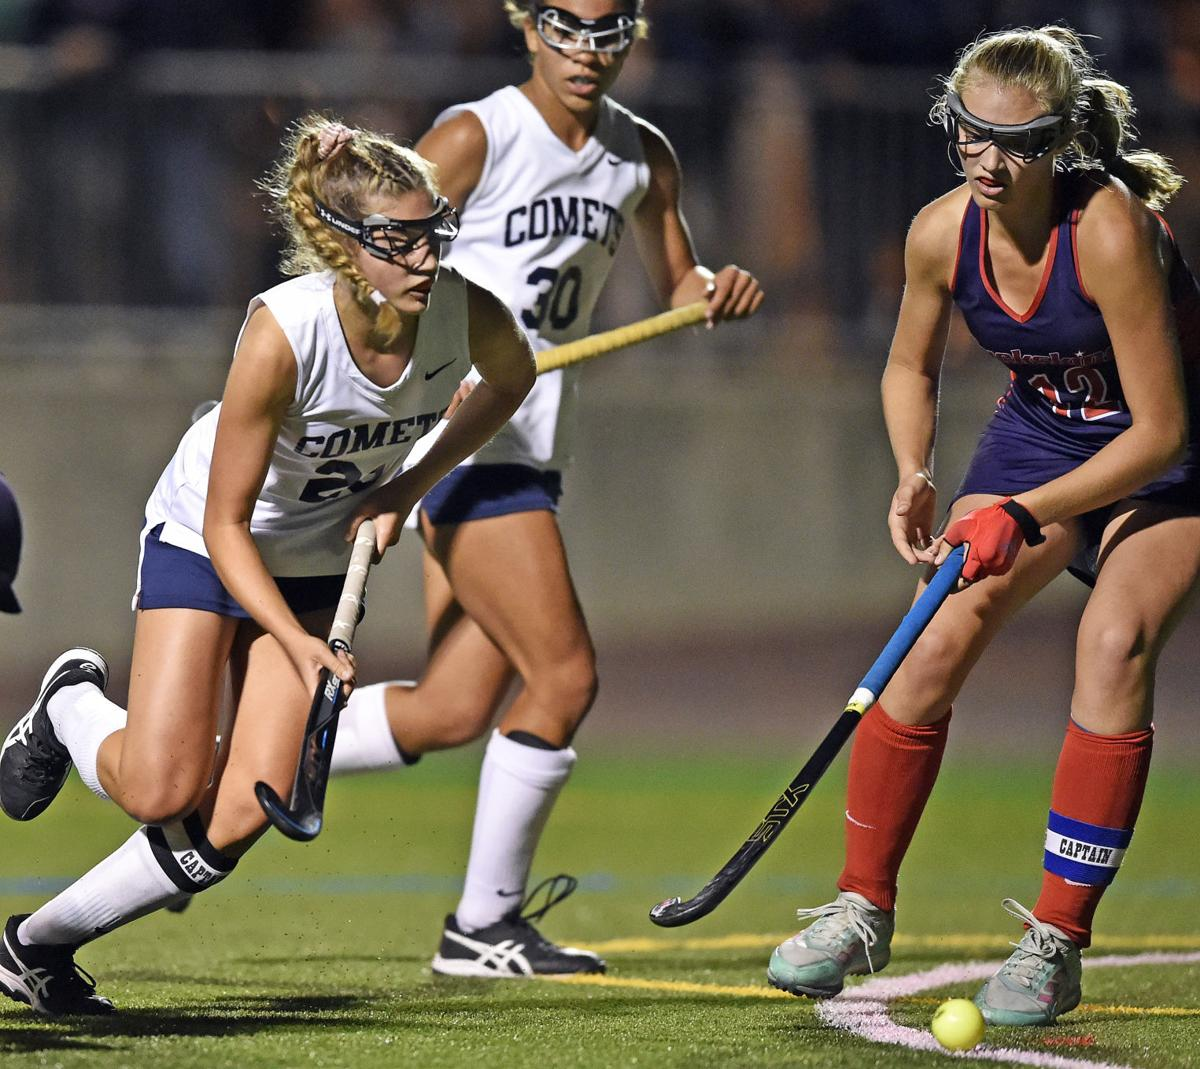 Penn Manor vs Conestoga Valley-LL Field Hockey